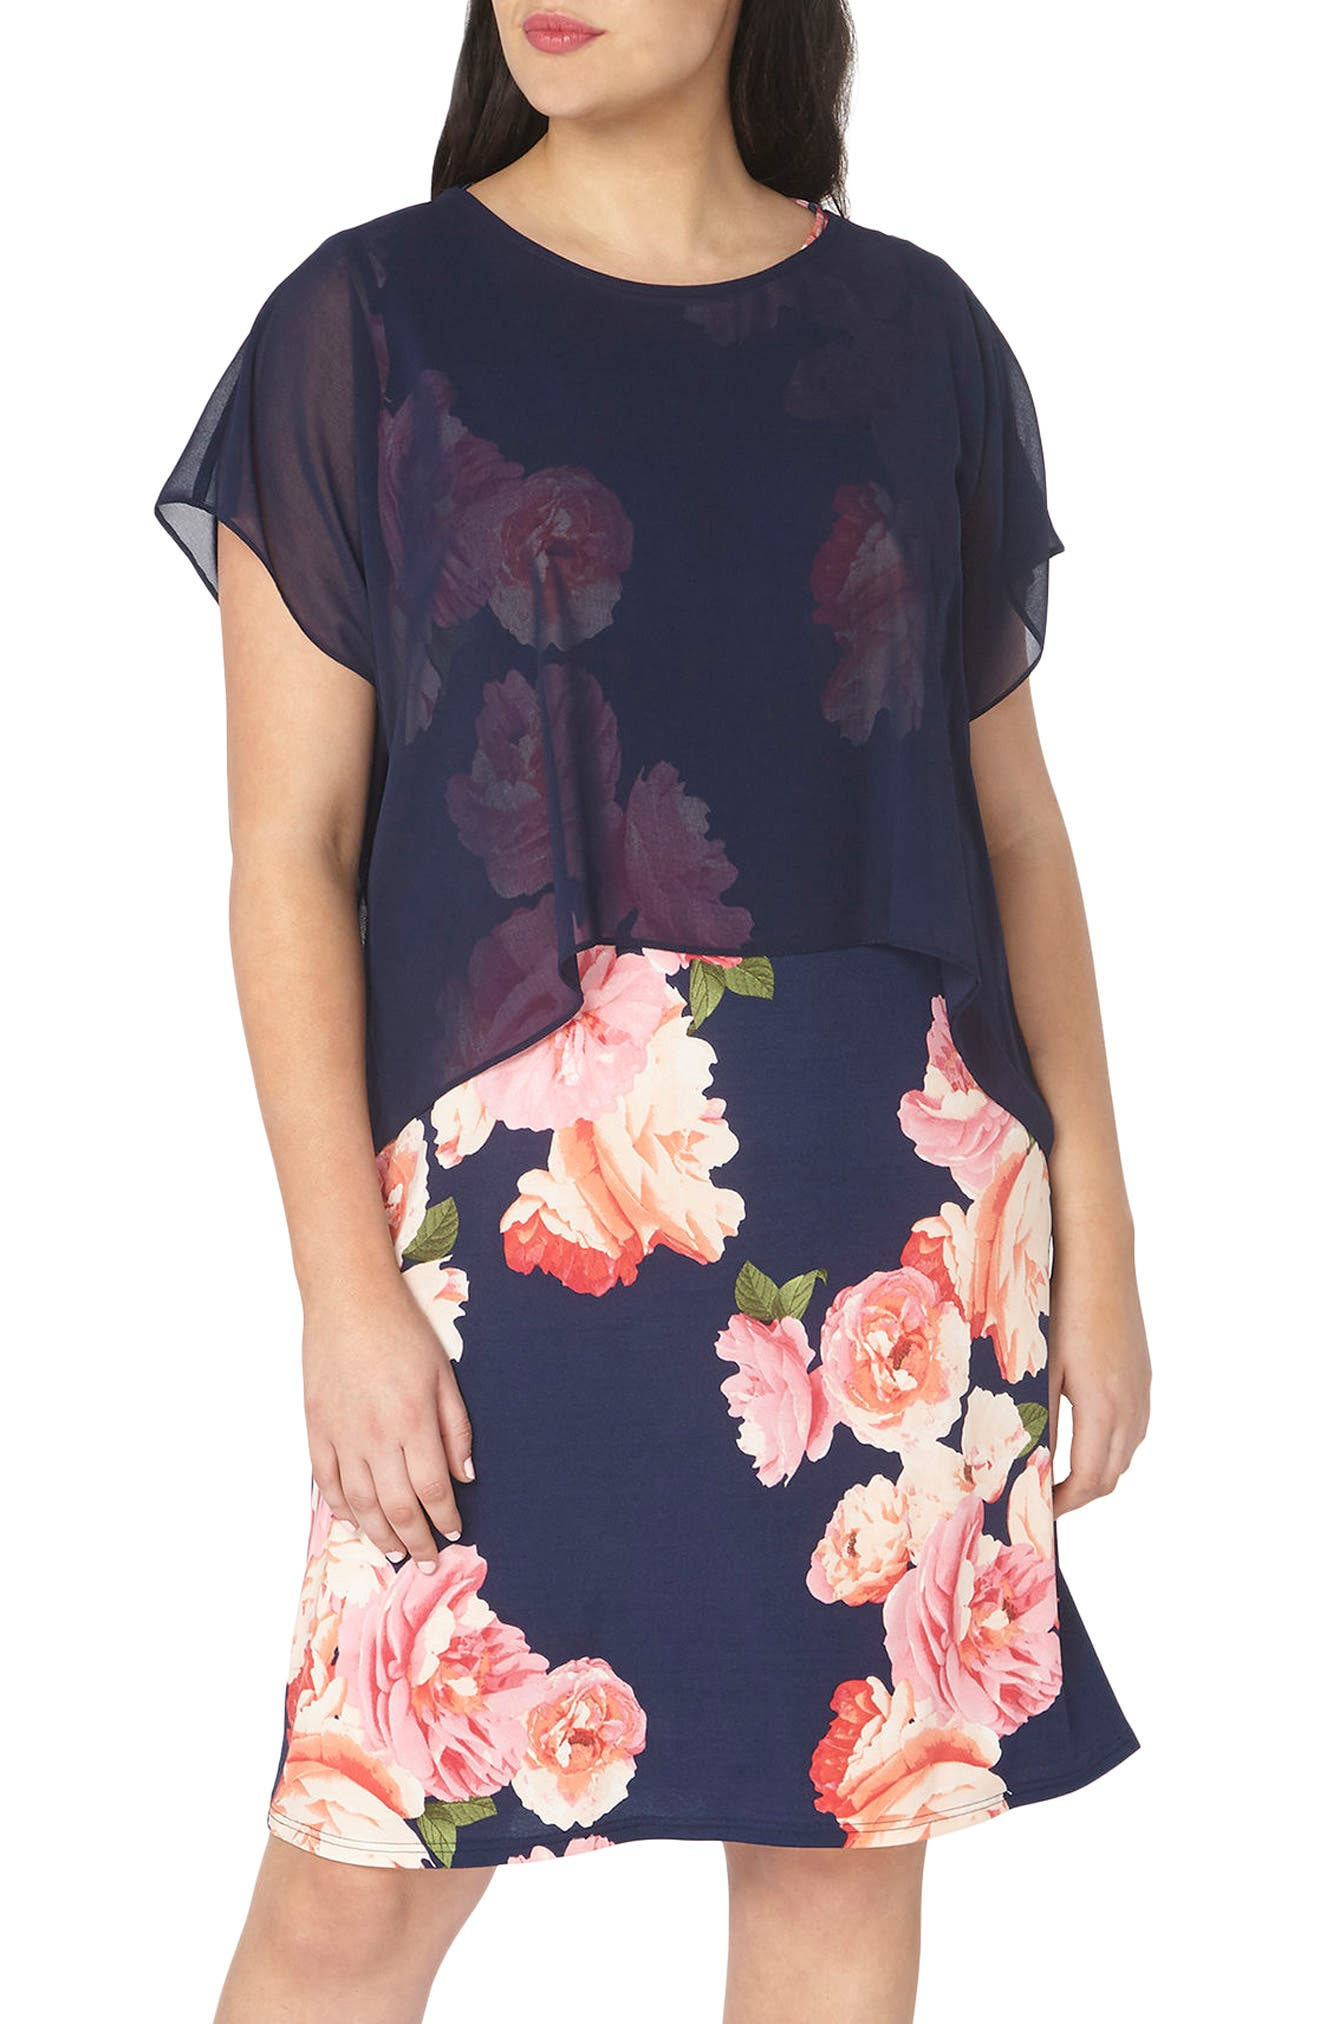 Evans Chiffon Overlay Floral Dress (Plus Size)